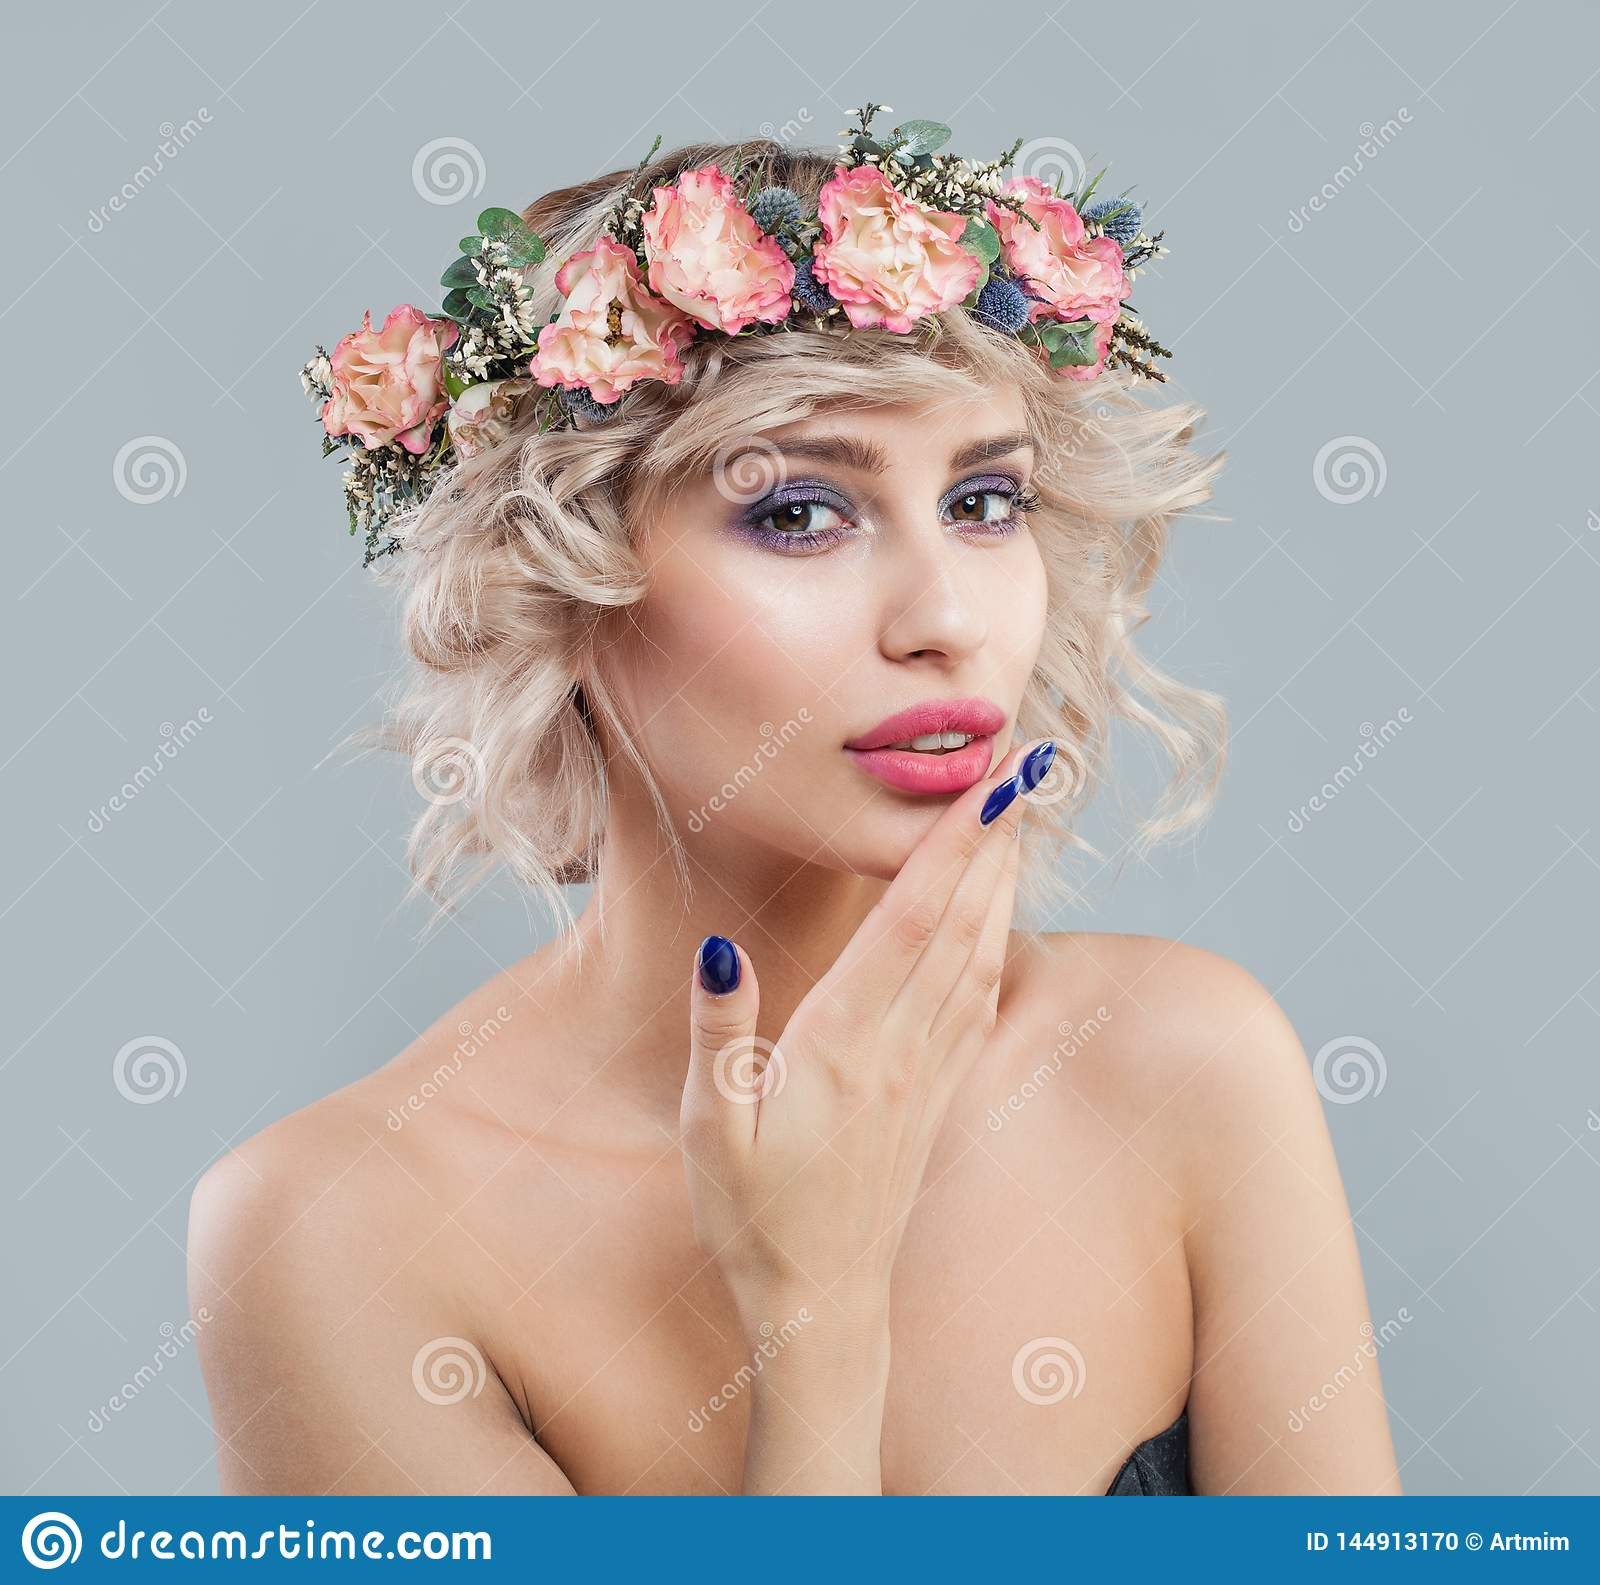 Pretty woman with clear skin, makeup, flowers and short curly haircut portrait